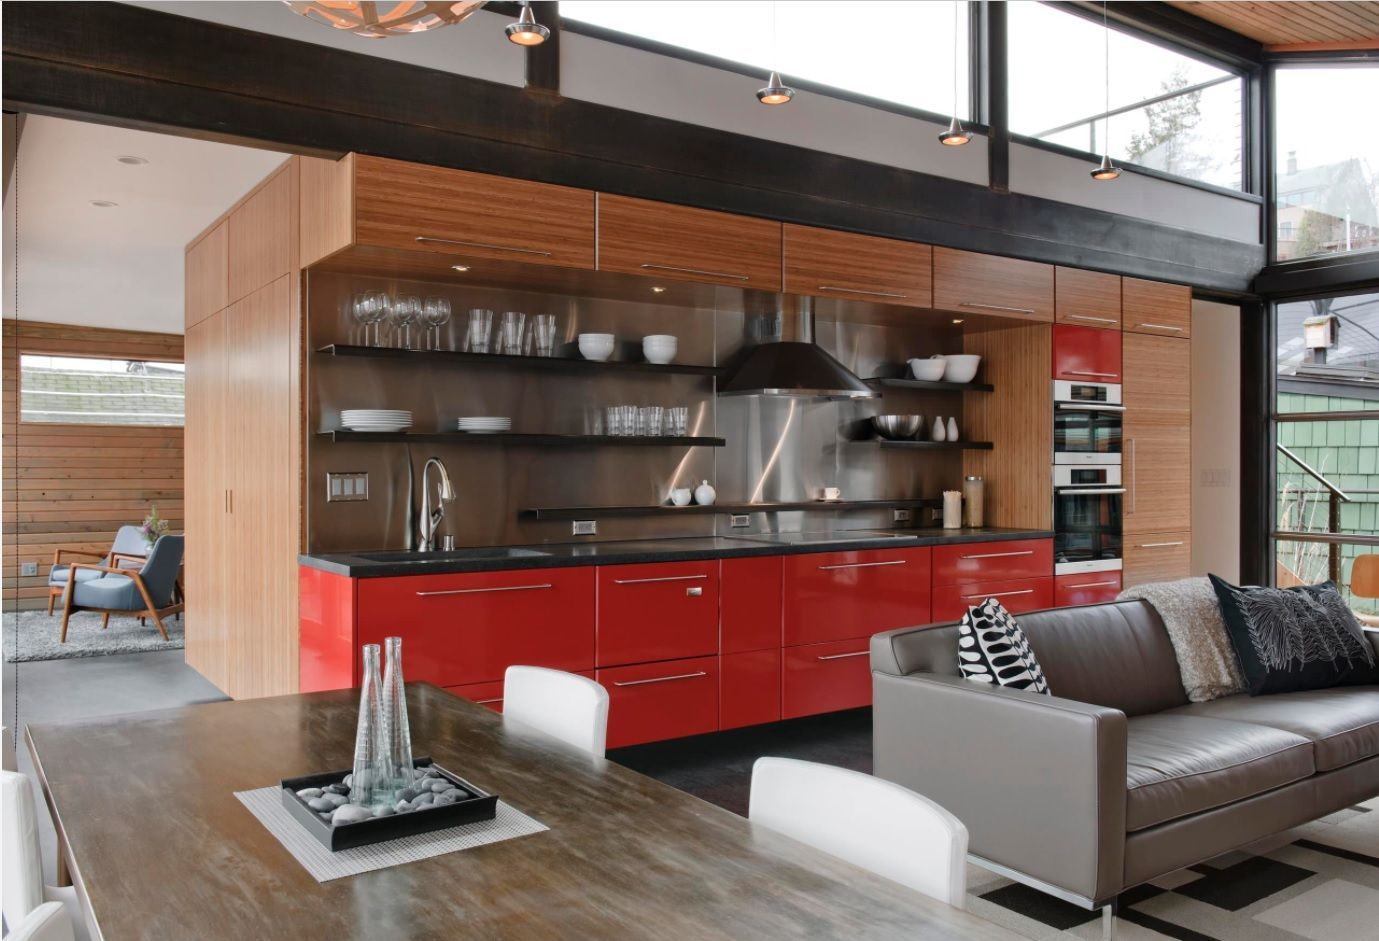 Open Kitchen Design & Interior Decoration. Two-leveled house with panoramic windows at the top windows of double-ceiling